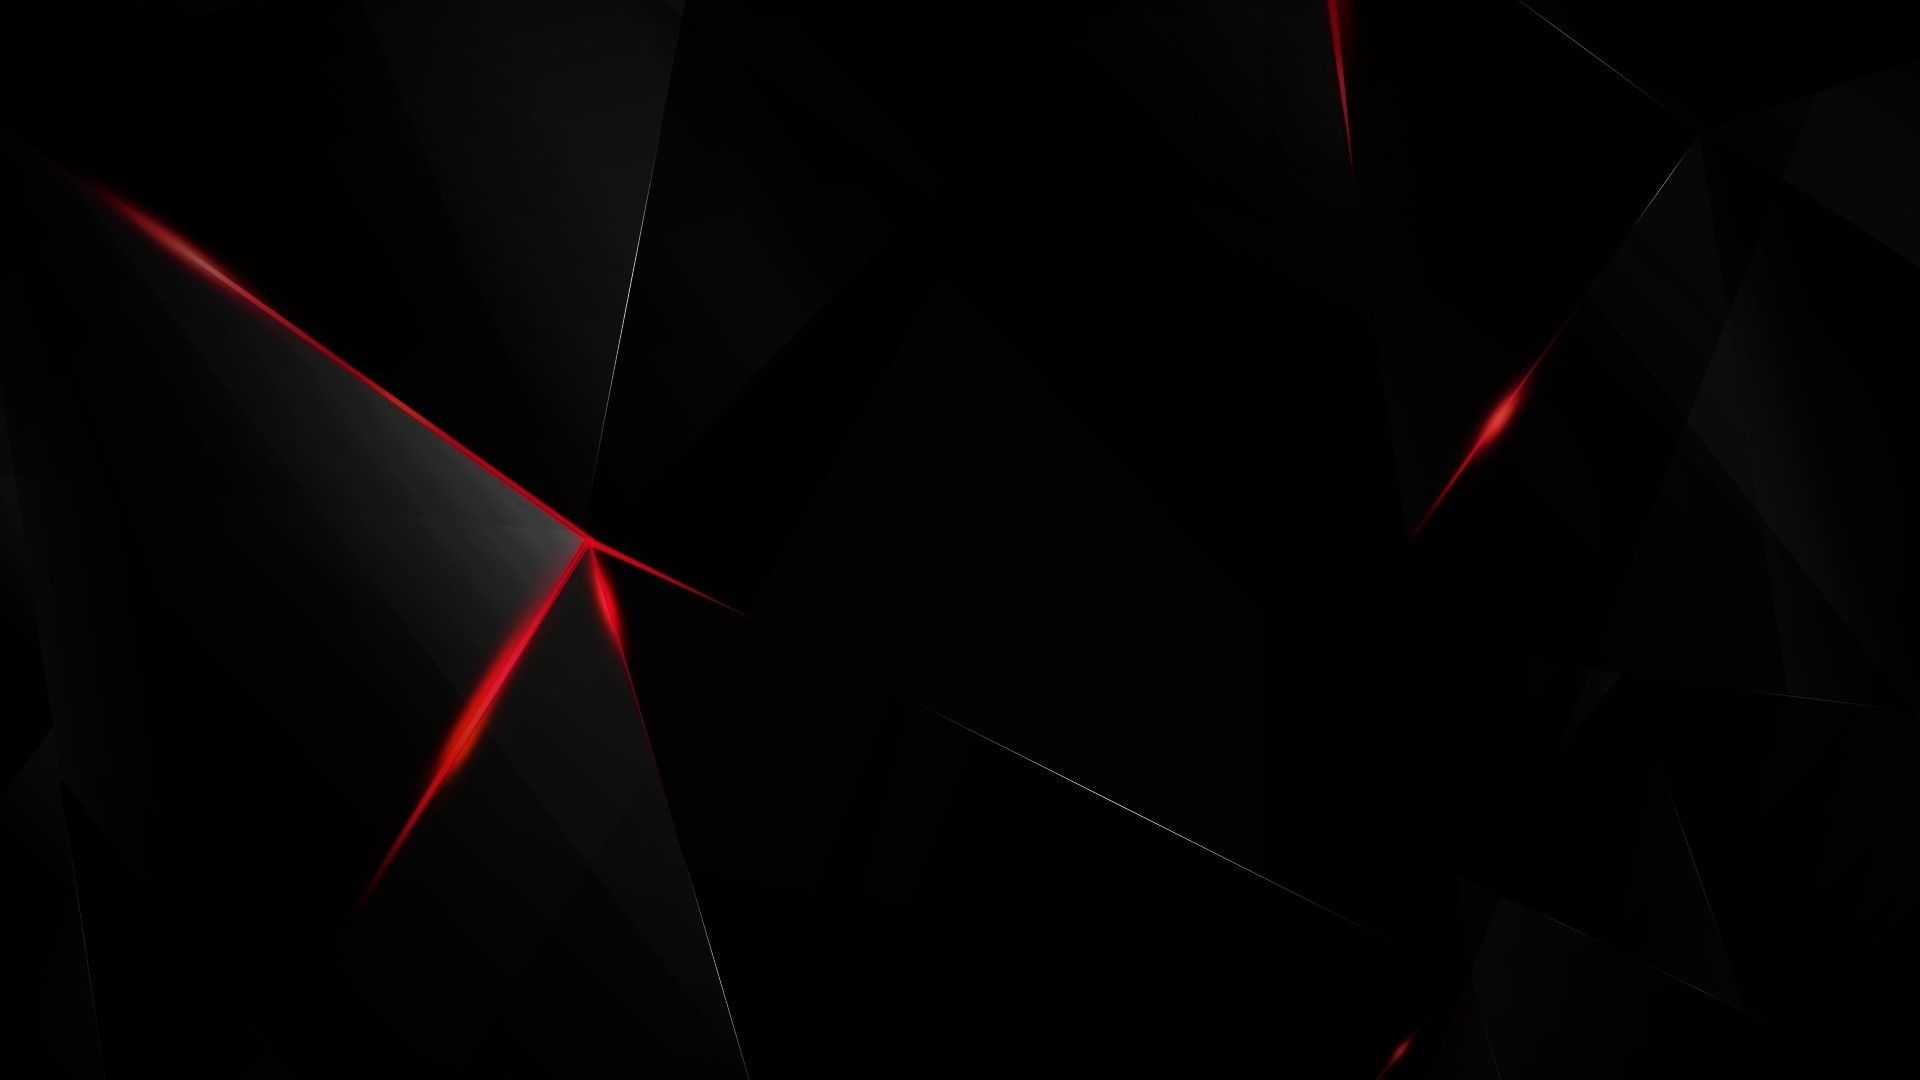 Black and Red PC Wallpapers - Top Free